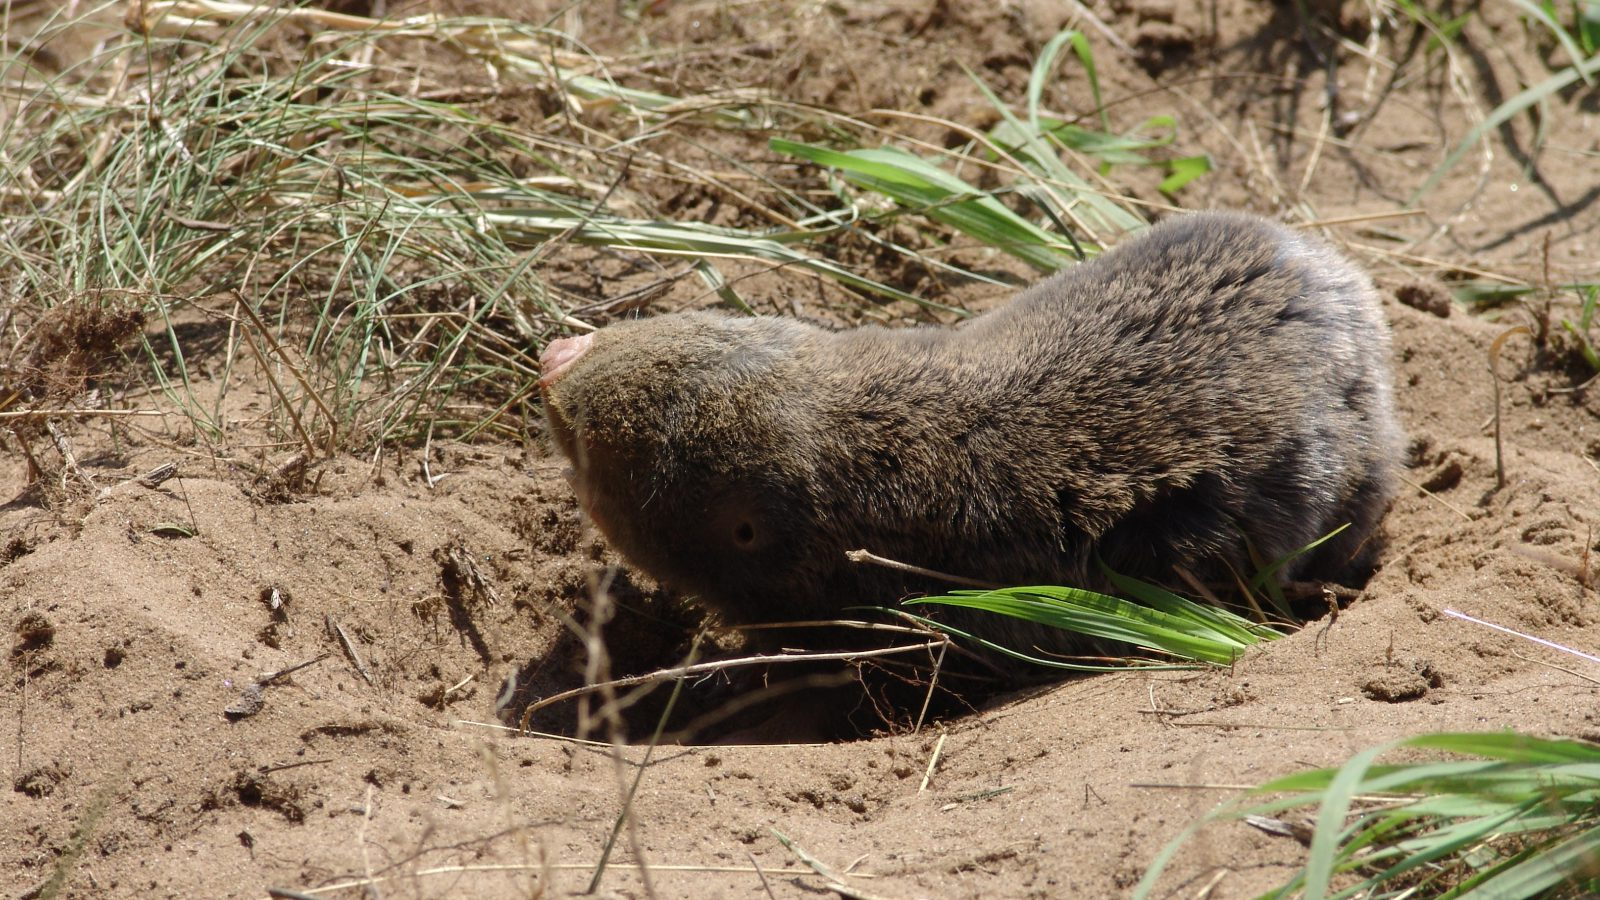 Hungary's refugee fence could threaten critically endangered Vojvodina blind mole rats